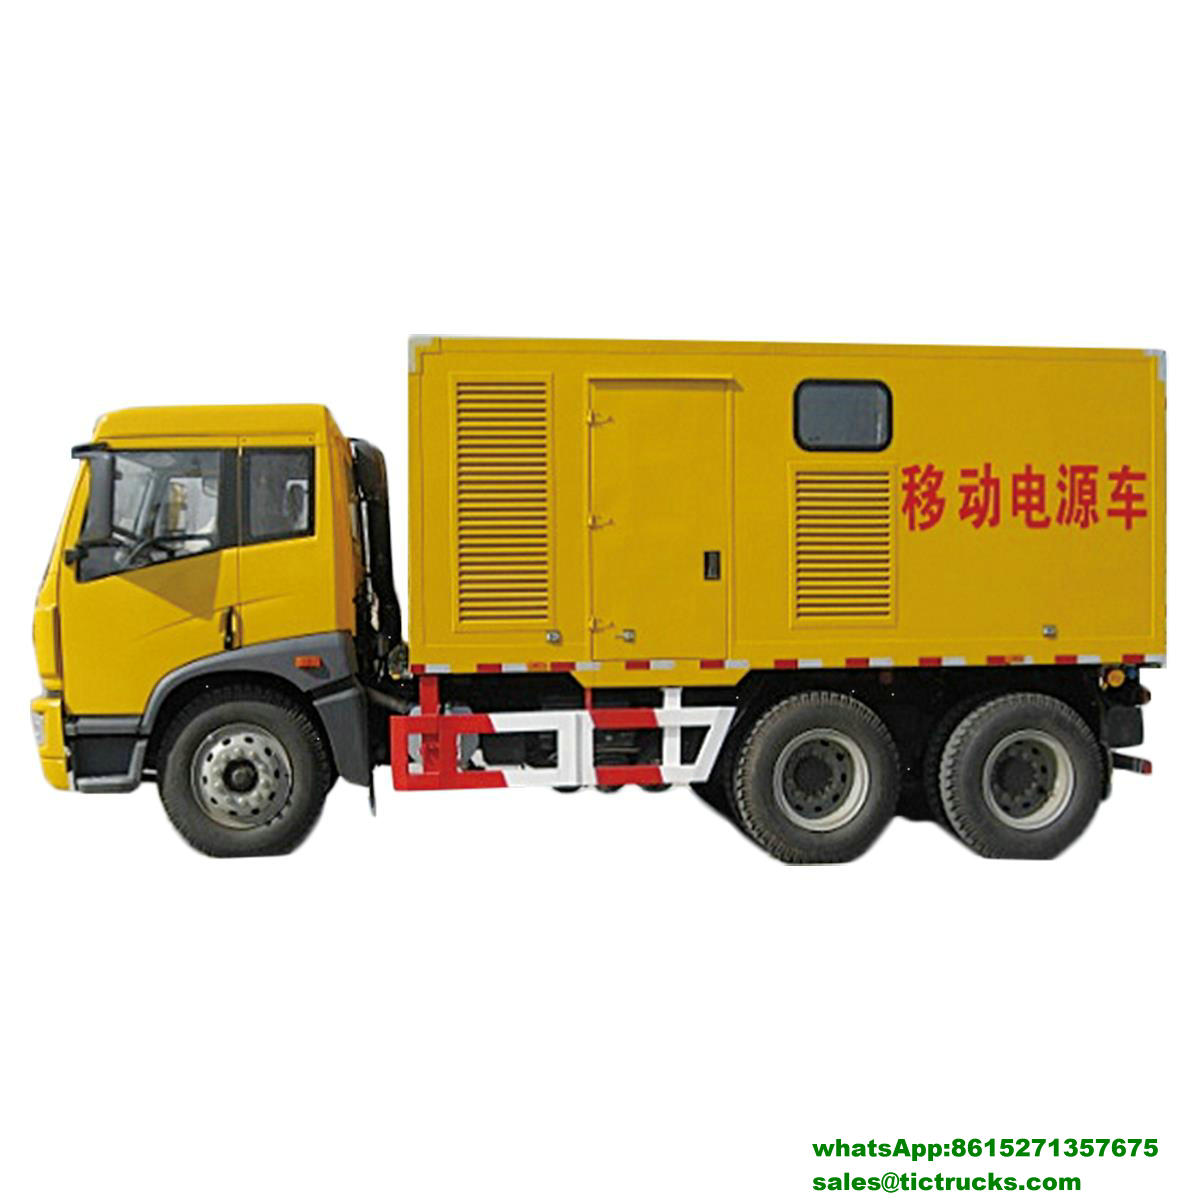 FAW Mobile Power Truck with diesel generator sets of 50